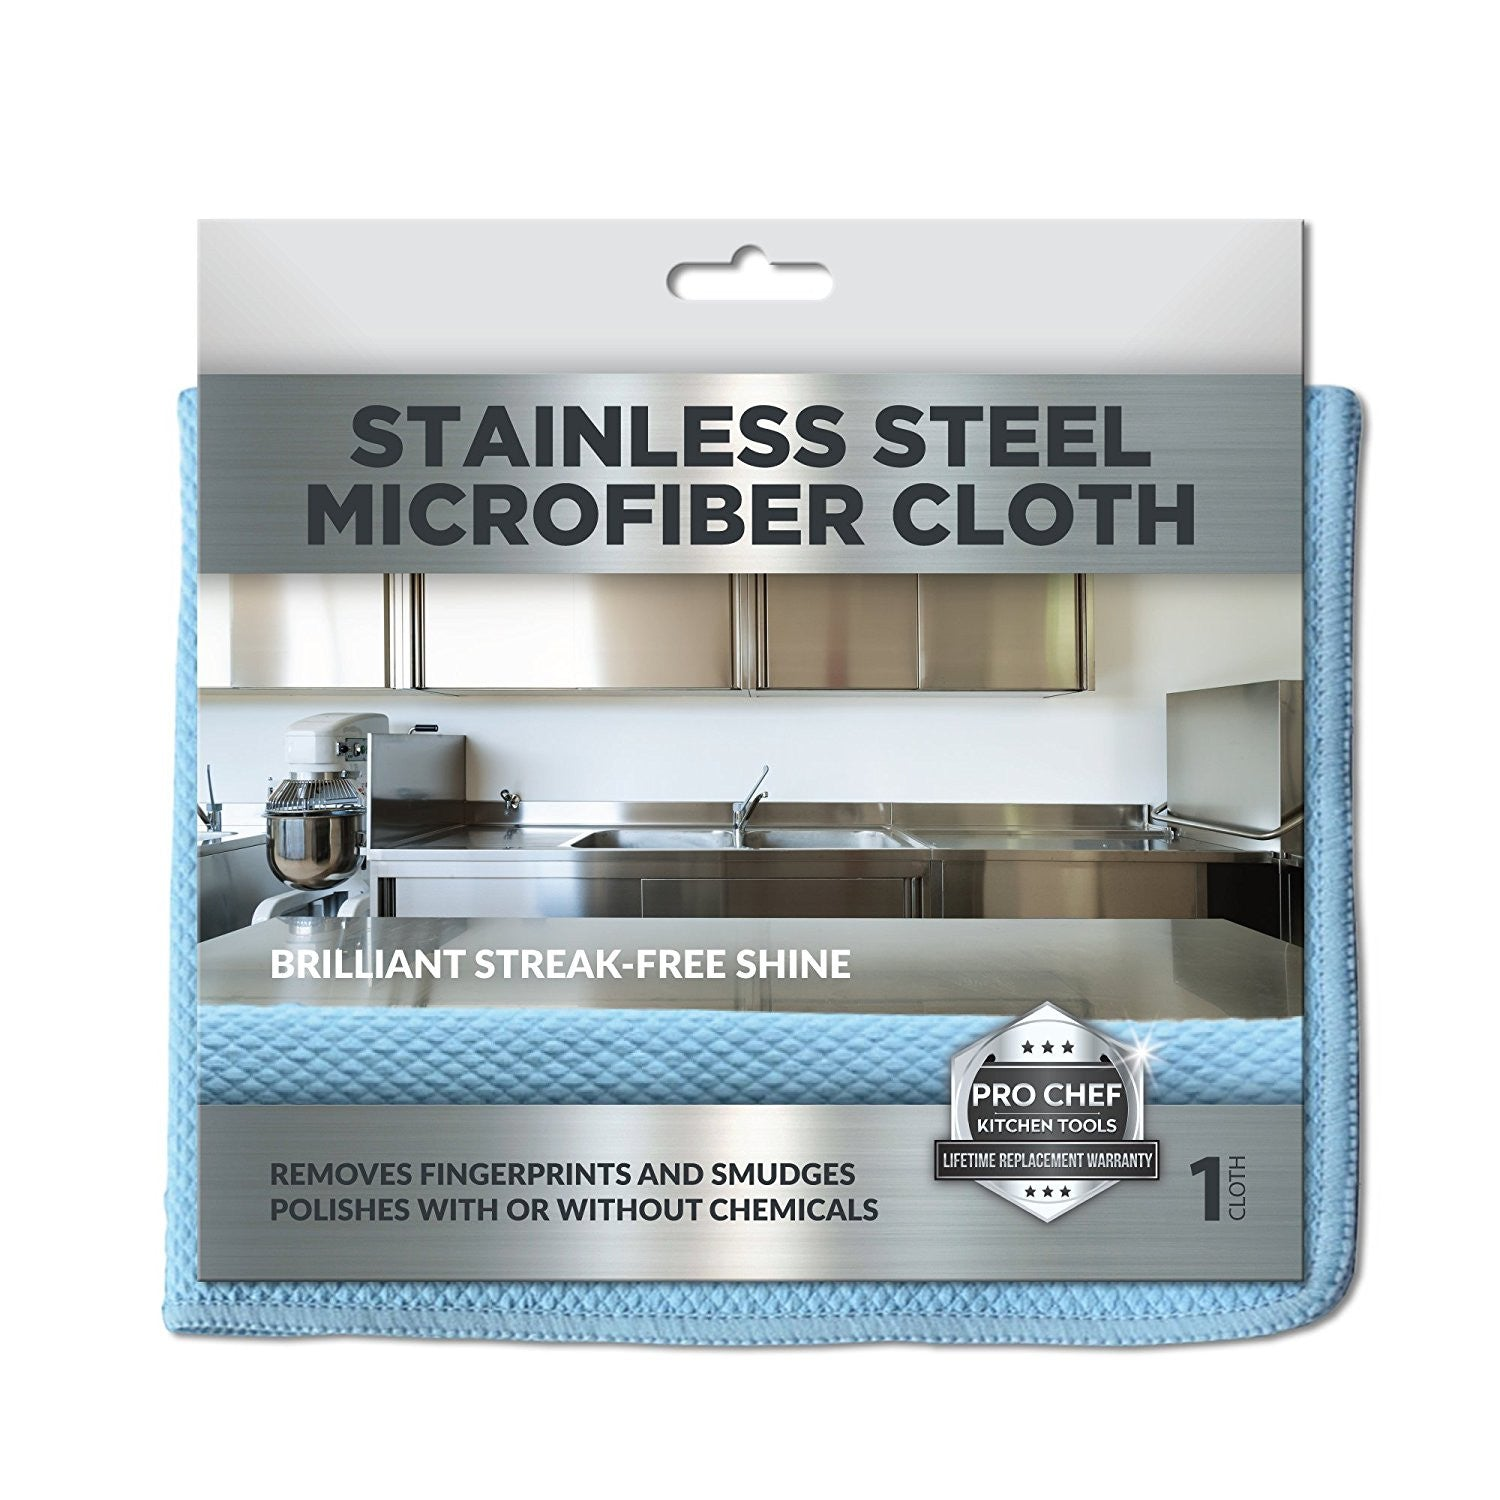 The Best Way To Clean Stainless Steel Appliances Stainless Steel Appliance Cleaner Pro Steel Cream Cleaner